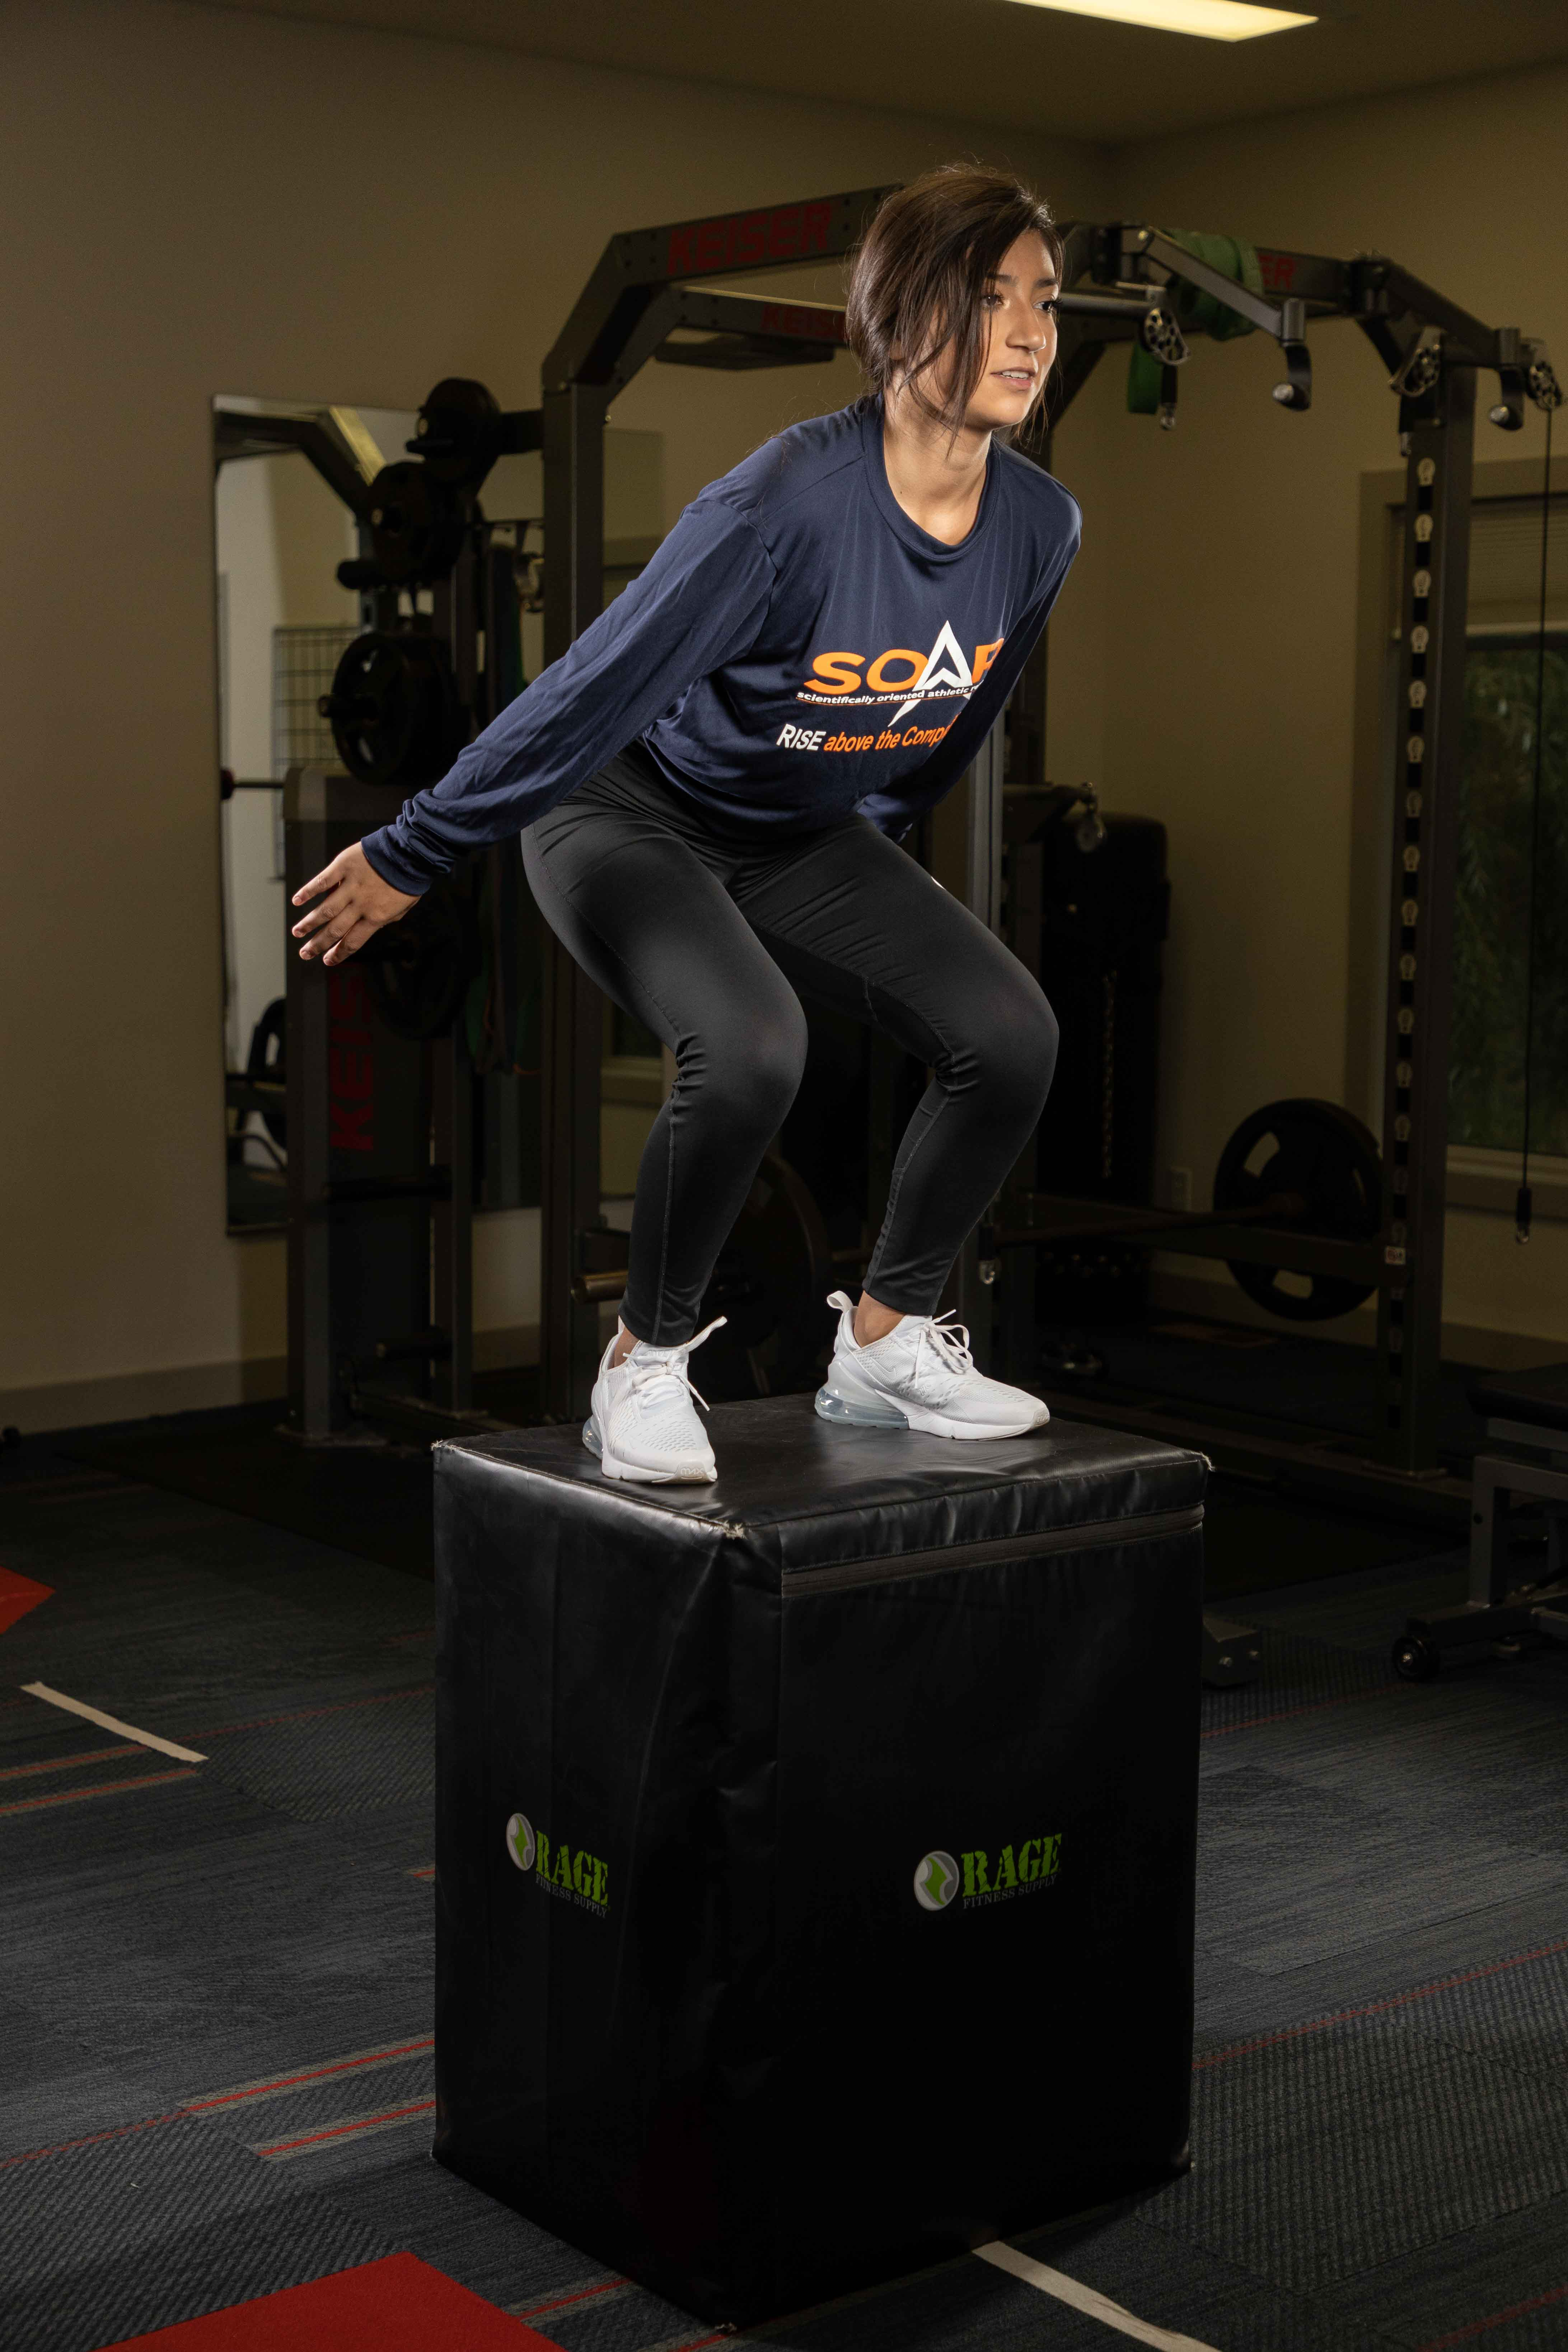 Girl on top of a box after doing a box jump